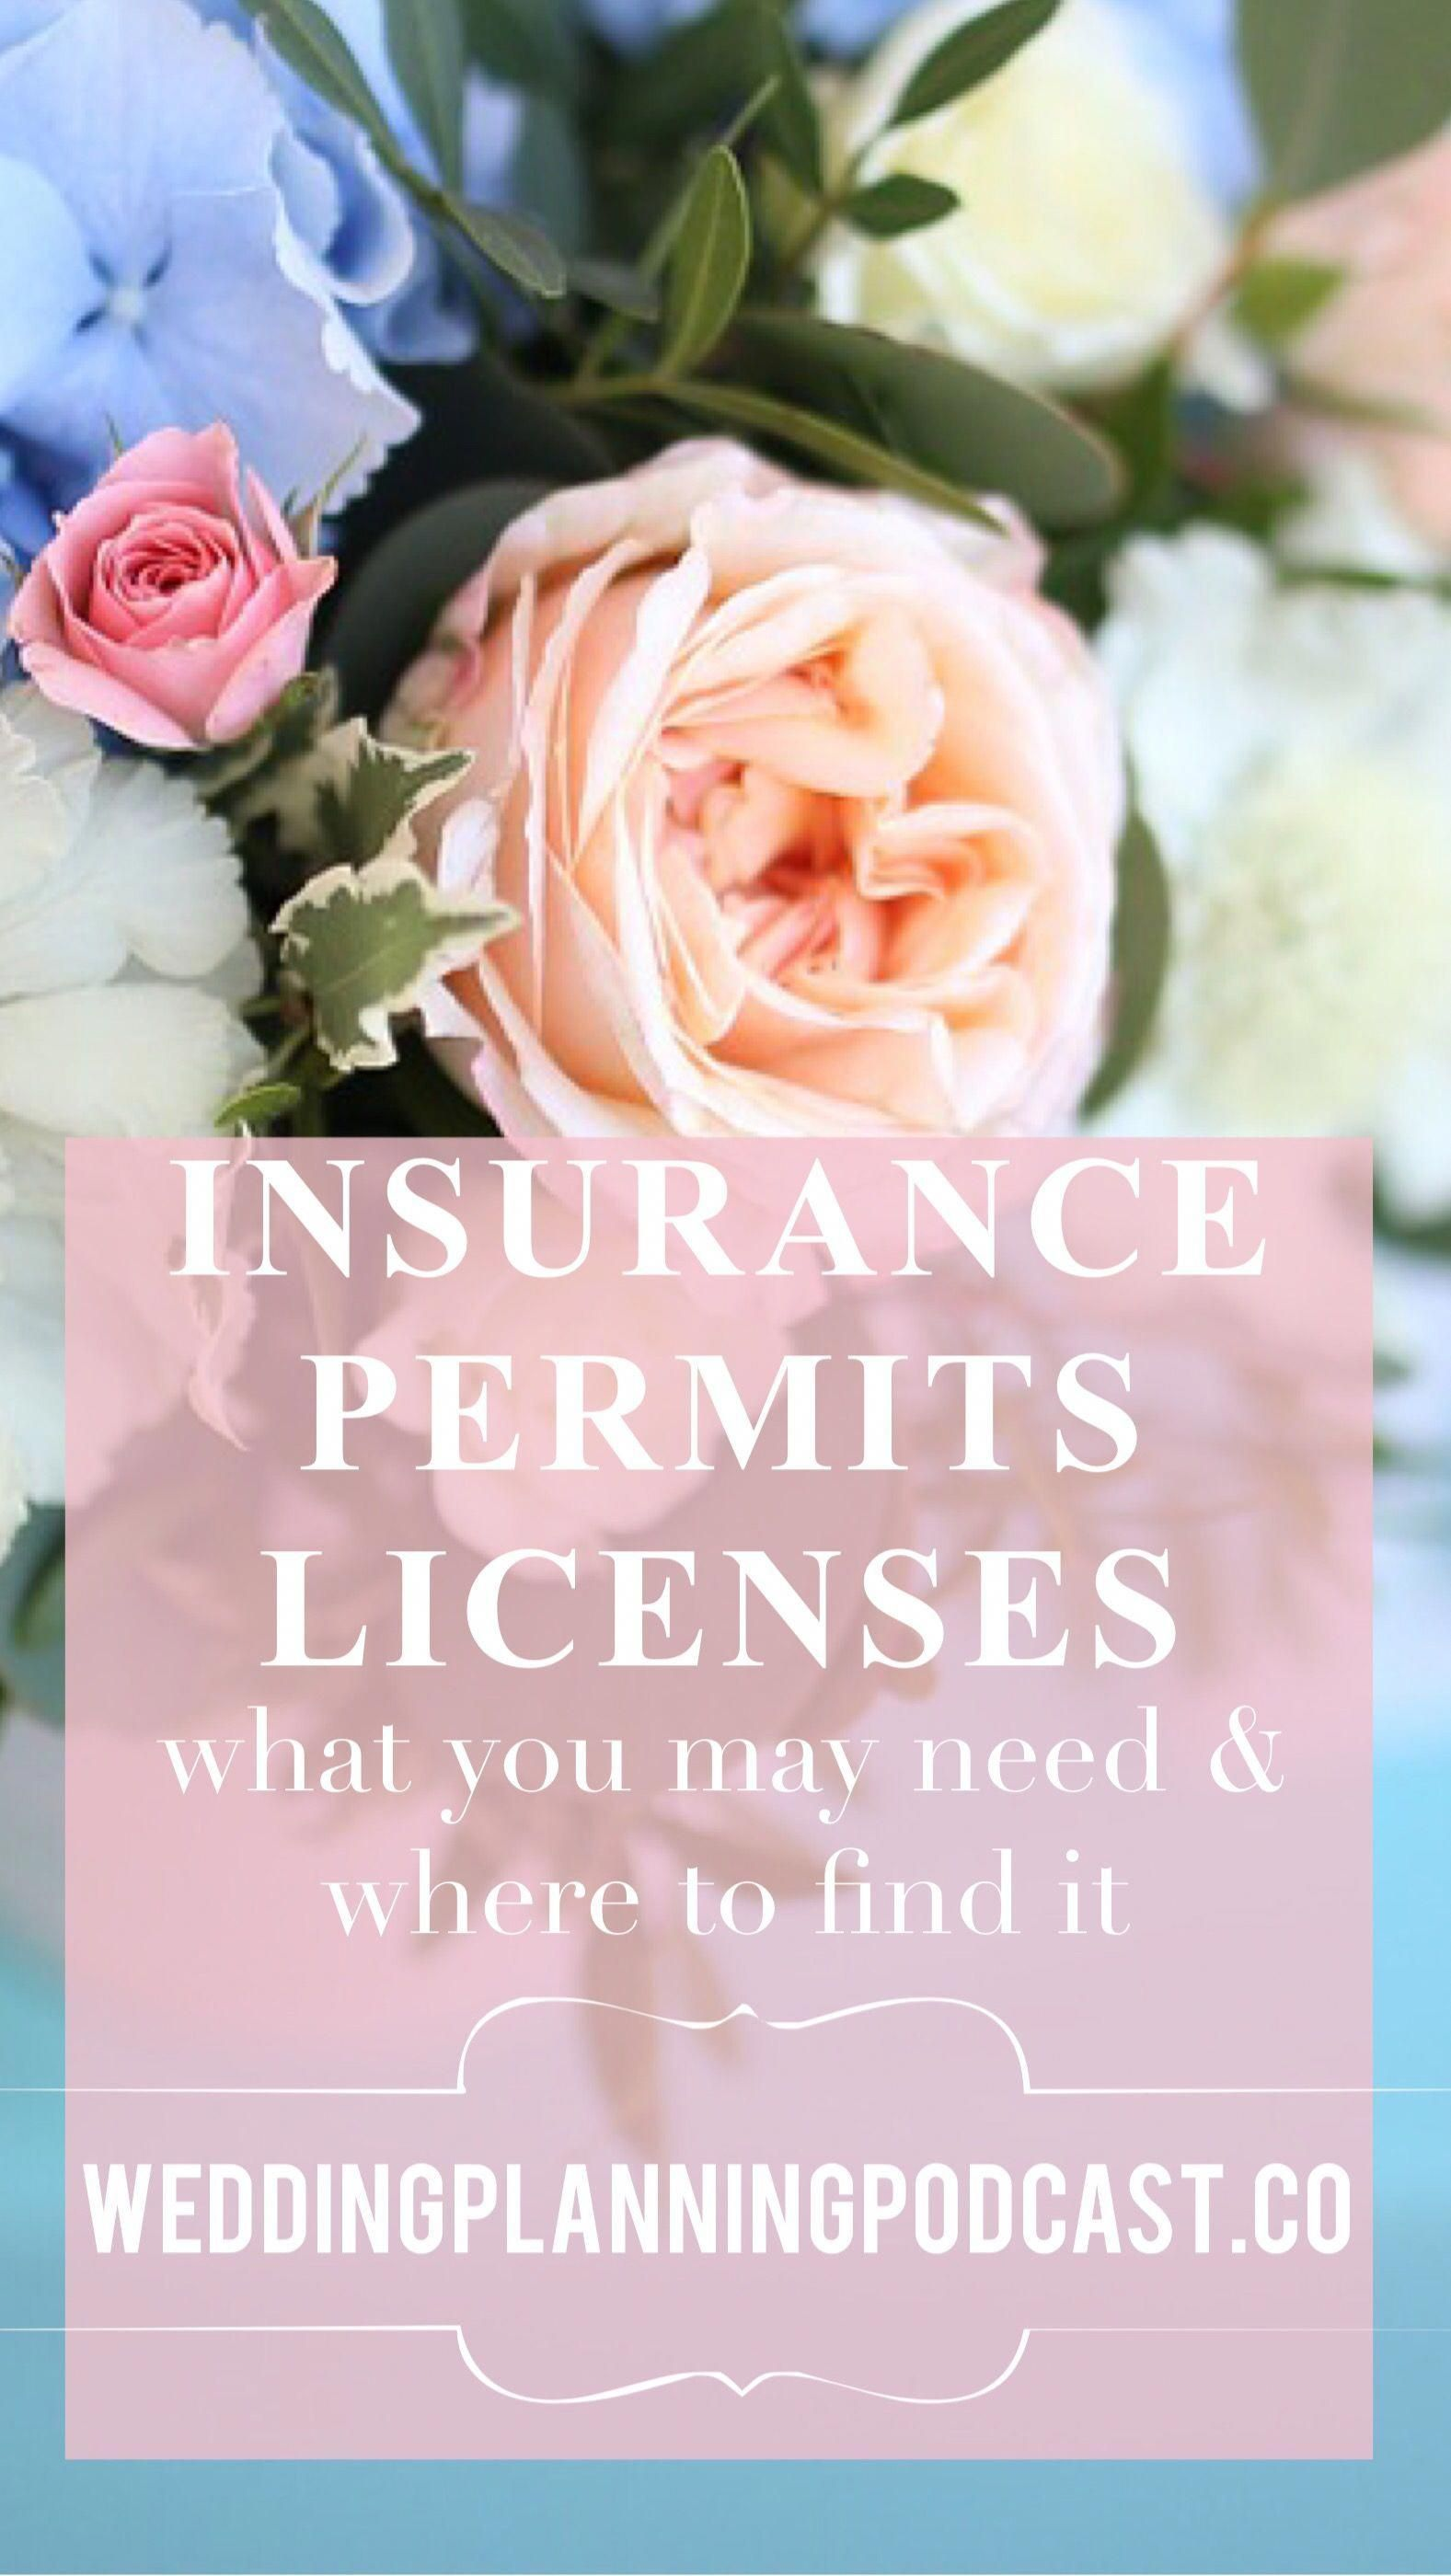 Wedding Insurance Do You Need It Find Out More In This Free Episode Of The Wedding Planning Podcast Wedding Evites Stress Free Wedding Wedding Insurance